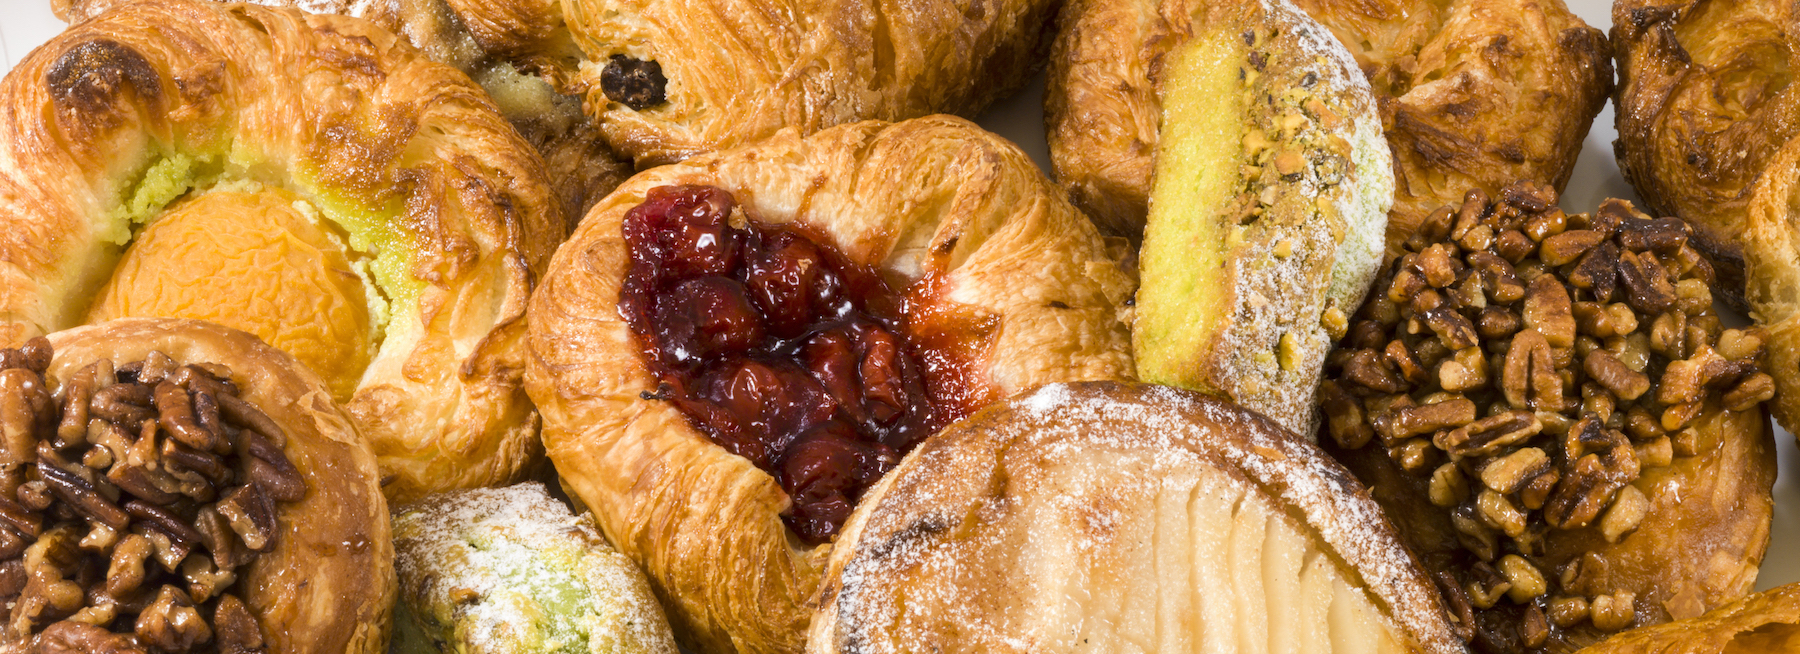 Pastries alt text